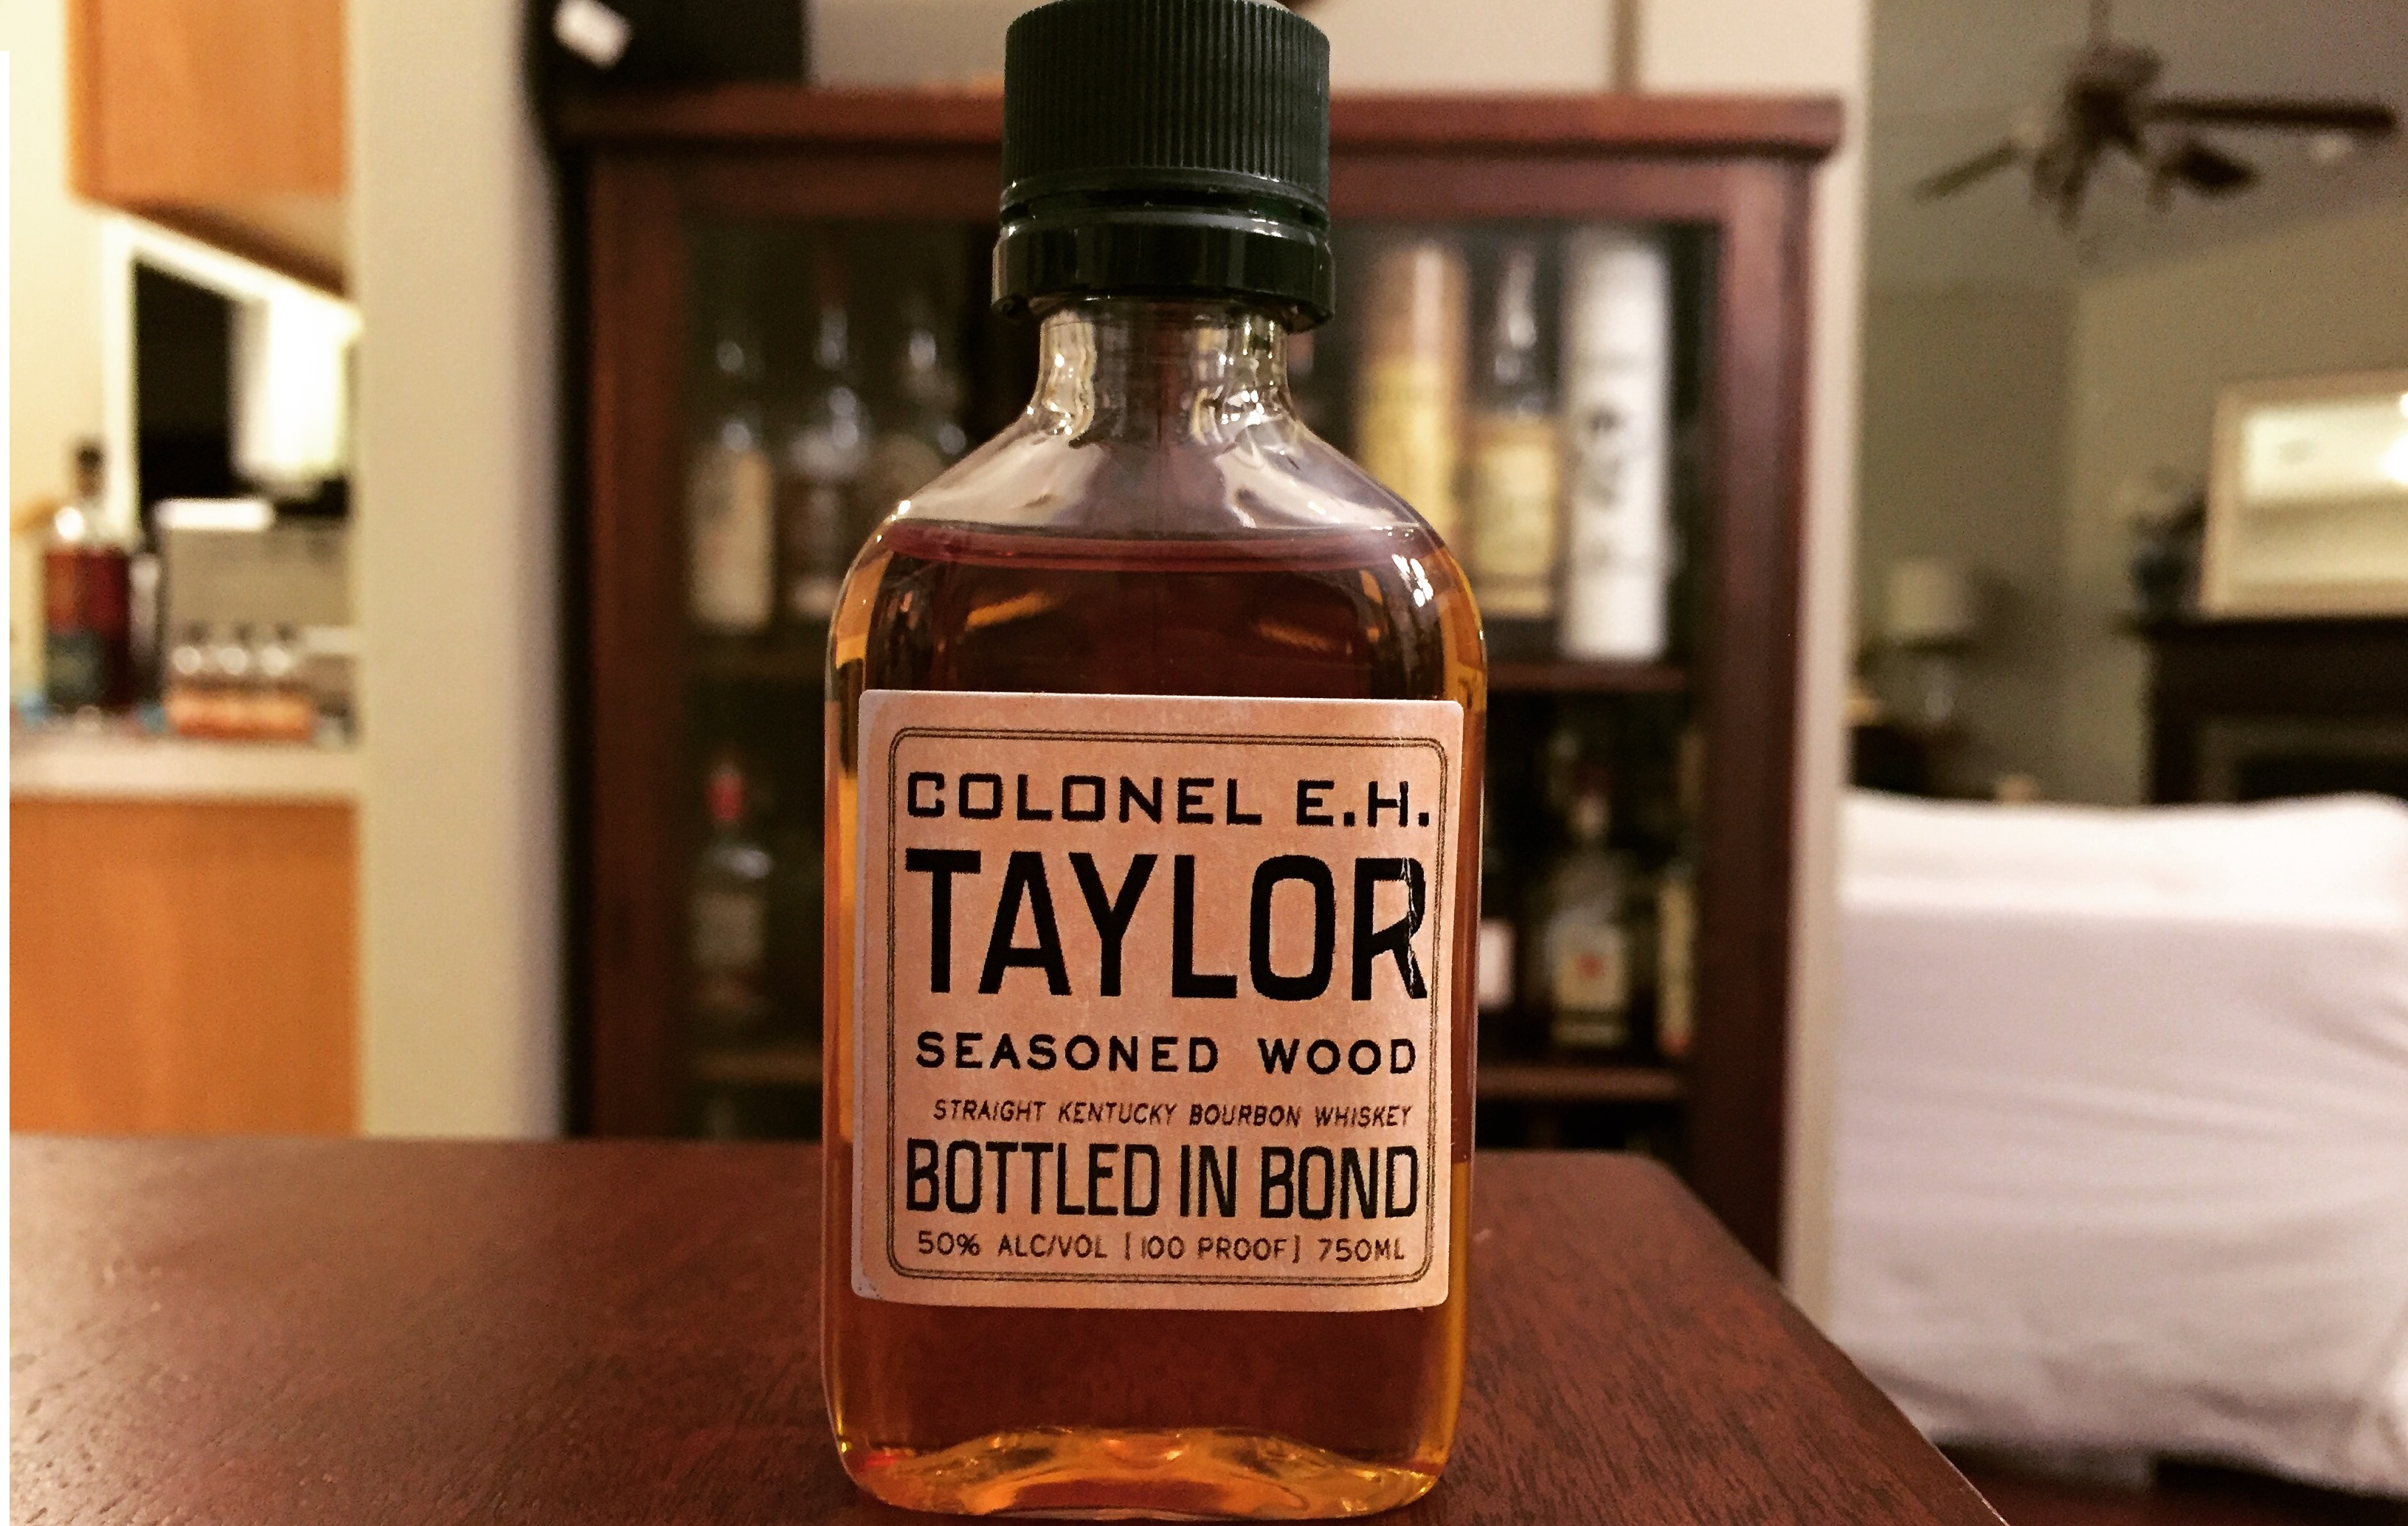 EH Taylor Seasoned Wood Review